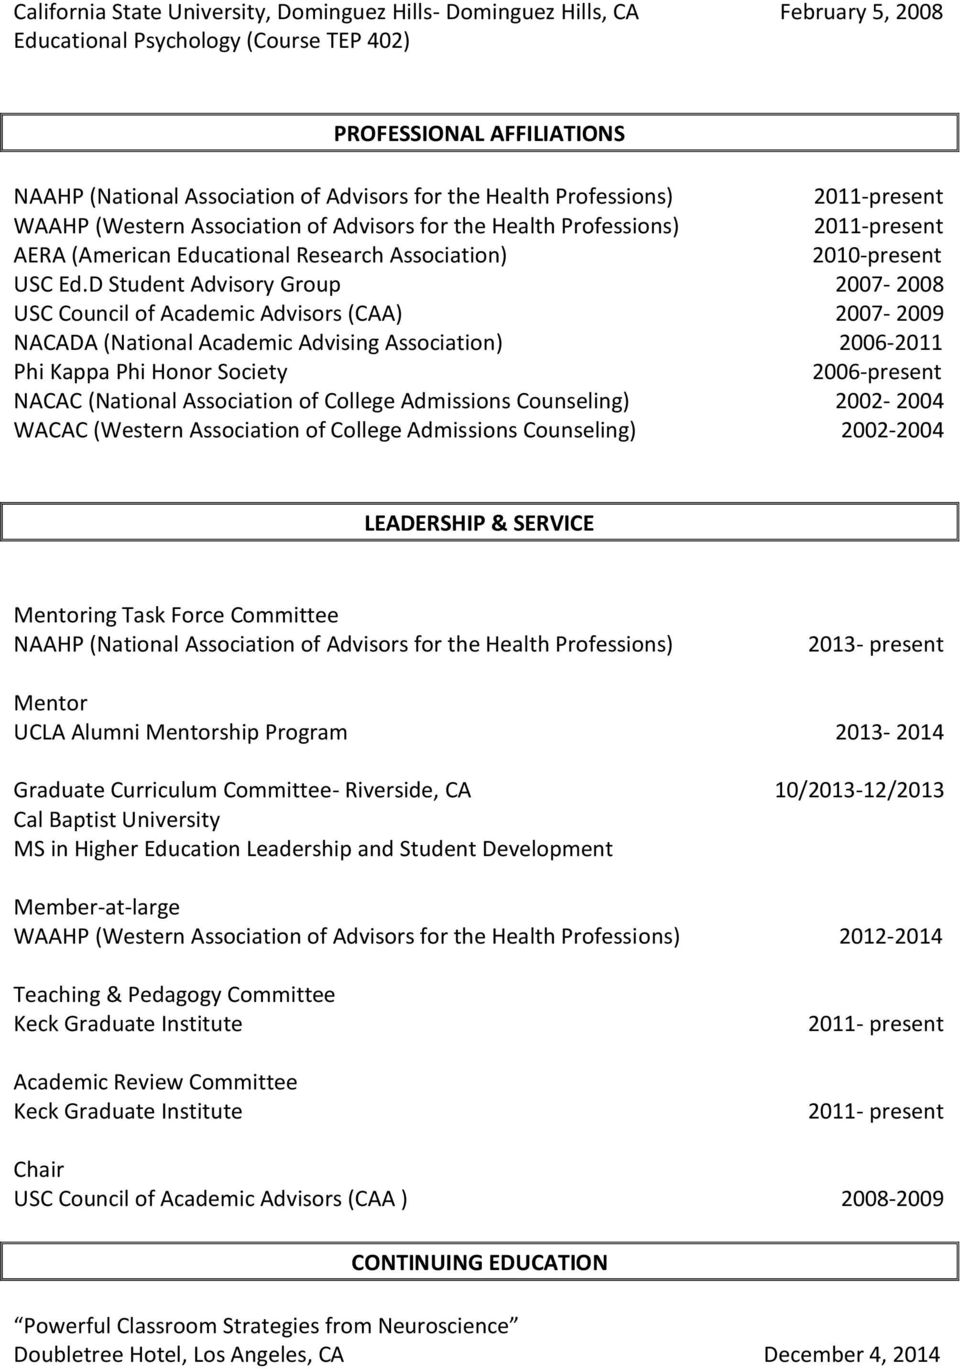 D Student Advisory Group 2007-2008 USC Council of Academic Advisors (CAA) 2007-2009 NACADA (National Academic Advising Association) 2006-2011 Phi Kappa Phi Honor Society 2006-present NACAC (National